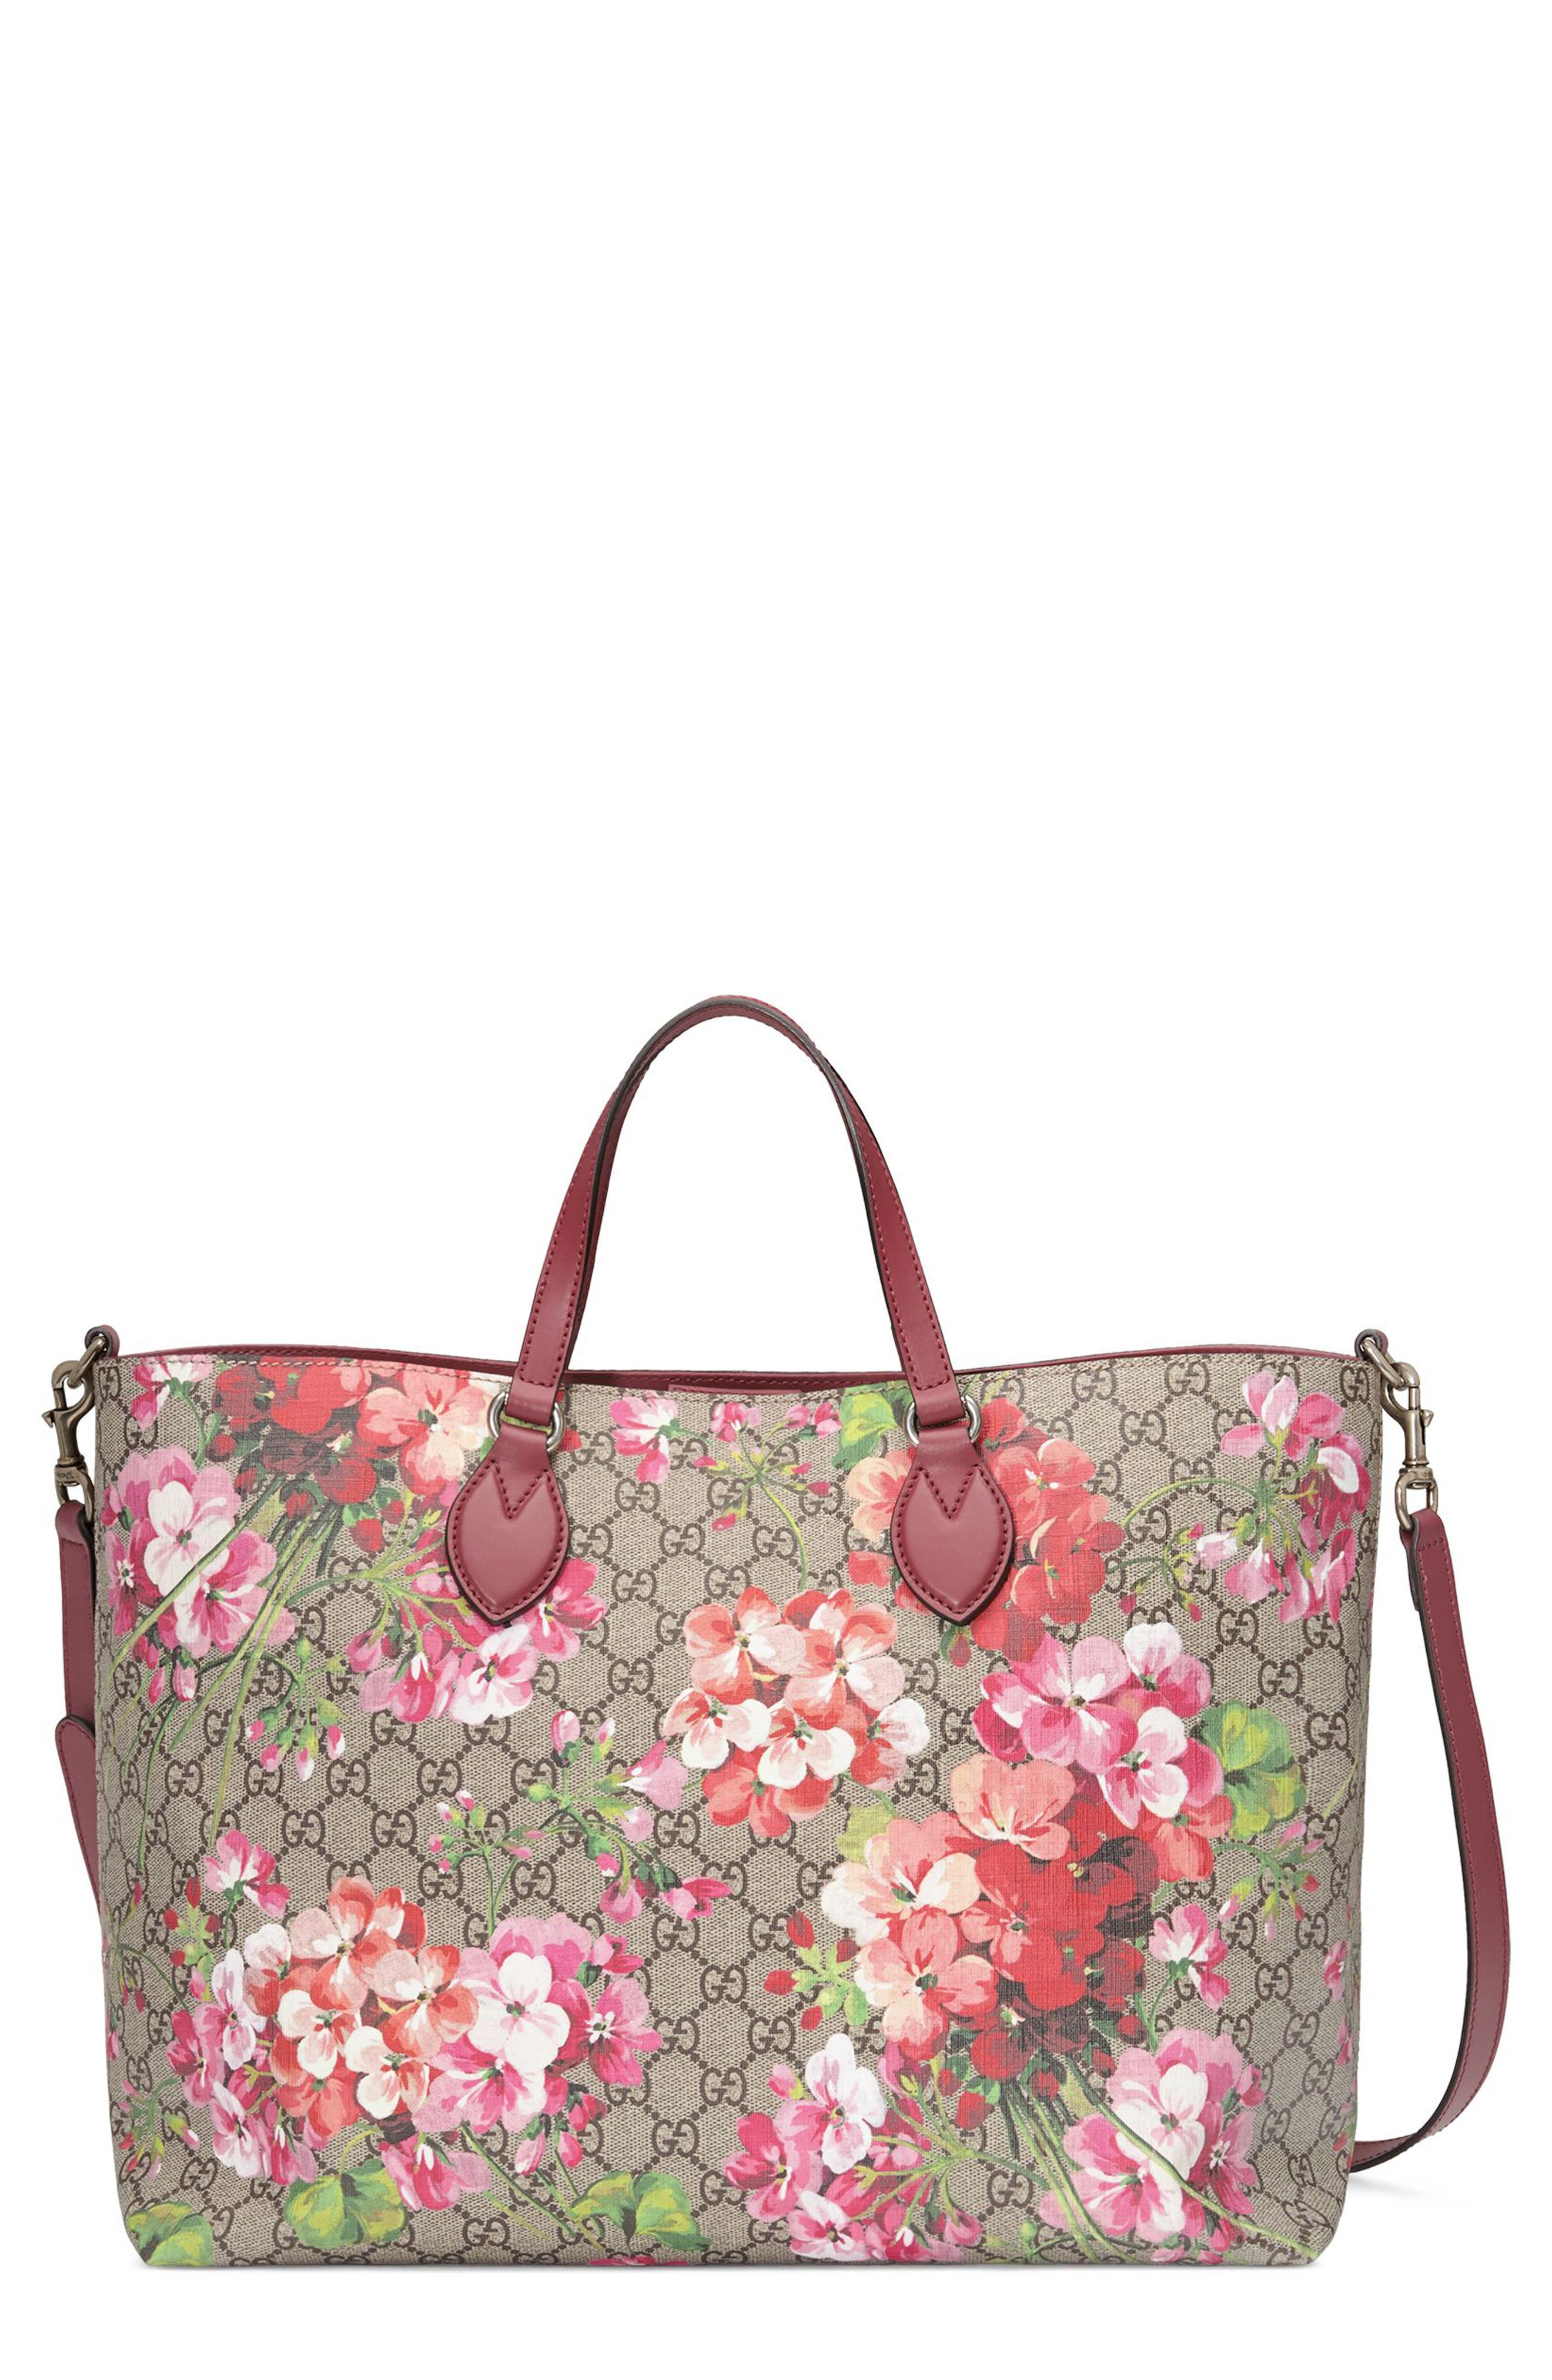 Alternate Image 1 Selected - Gucci Soft GG Blooms Tote